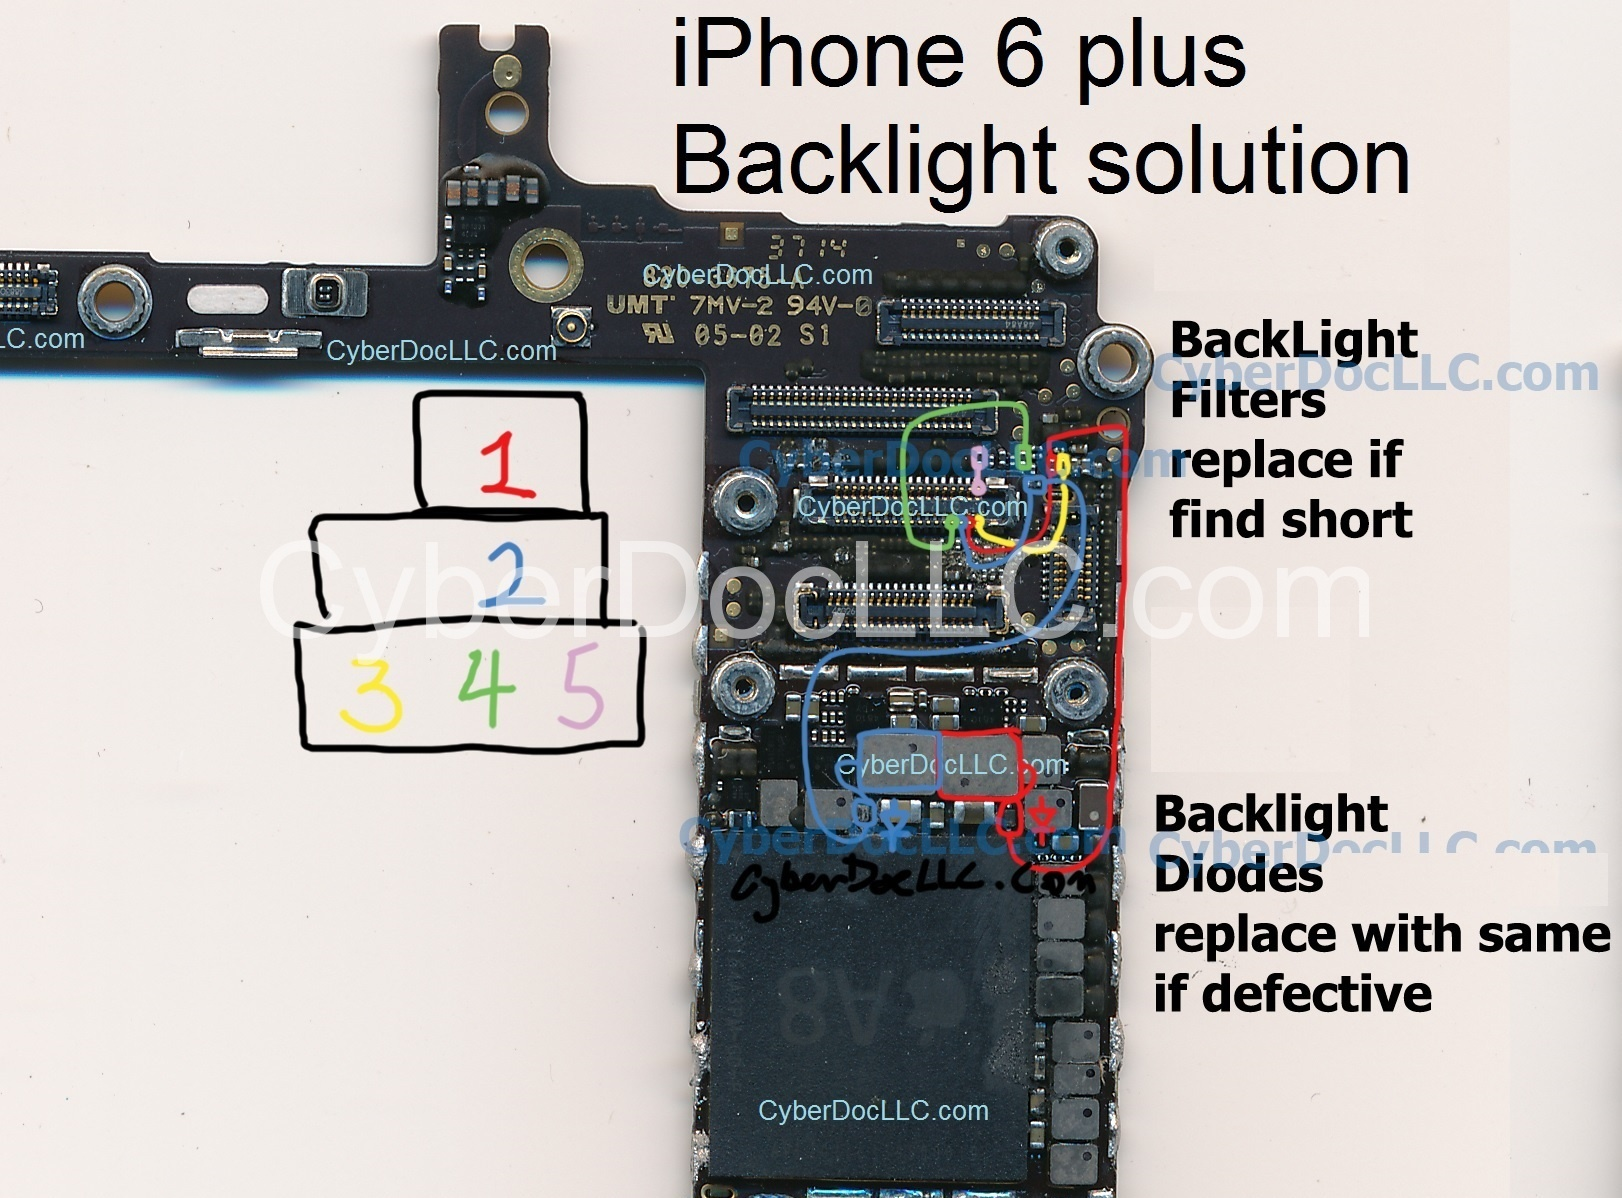 new concept 6fcfb 3d36b iPhone 6 Plus Backlight repair kit 2diode 6filters for dim screen and no  backlight | CyberDocLLC | iPhone and Apple Products Hardware Repair  Solutions